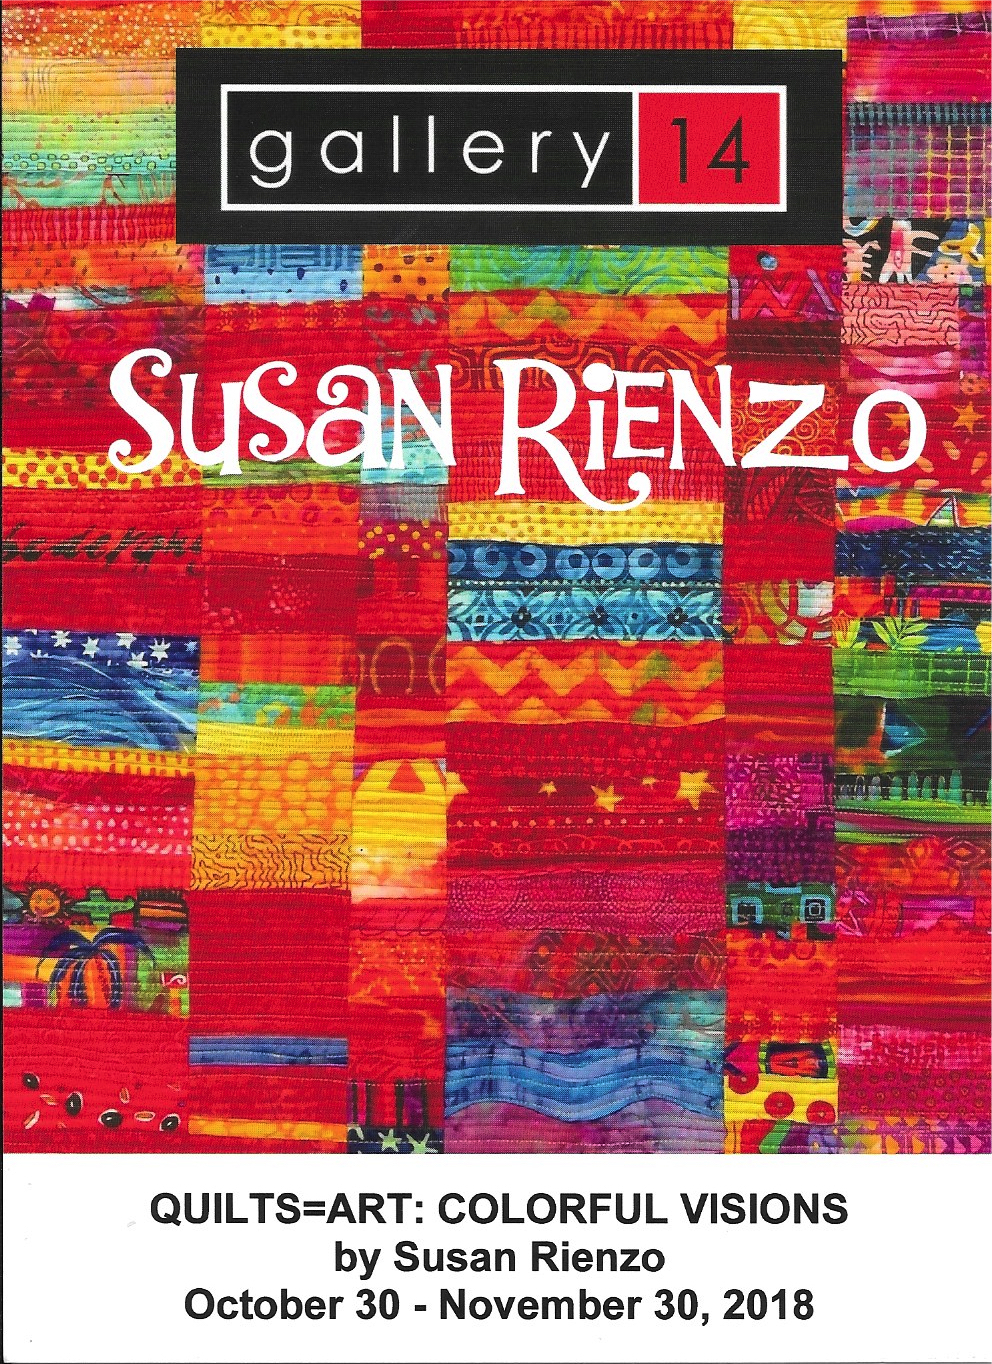 NEWS AND UPDATES - 2018OCTOBER 30-NOVEMBER 30GALLERY 14, VERO BEACH, FLORIDAQUILTS=ART: COLORFUL VISIONSRECEPTION: FRIDAY, NOVEMBER 2, 5-8 PM AT THE FIRST FRIDAY STROLLPLEASE COME AND BRING YOUR FRIENDS!1911 14th Avenue, Vero Beach772-562-5525